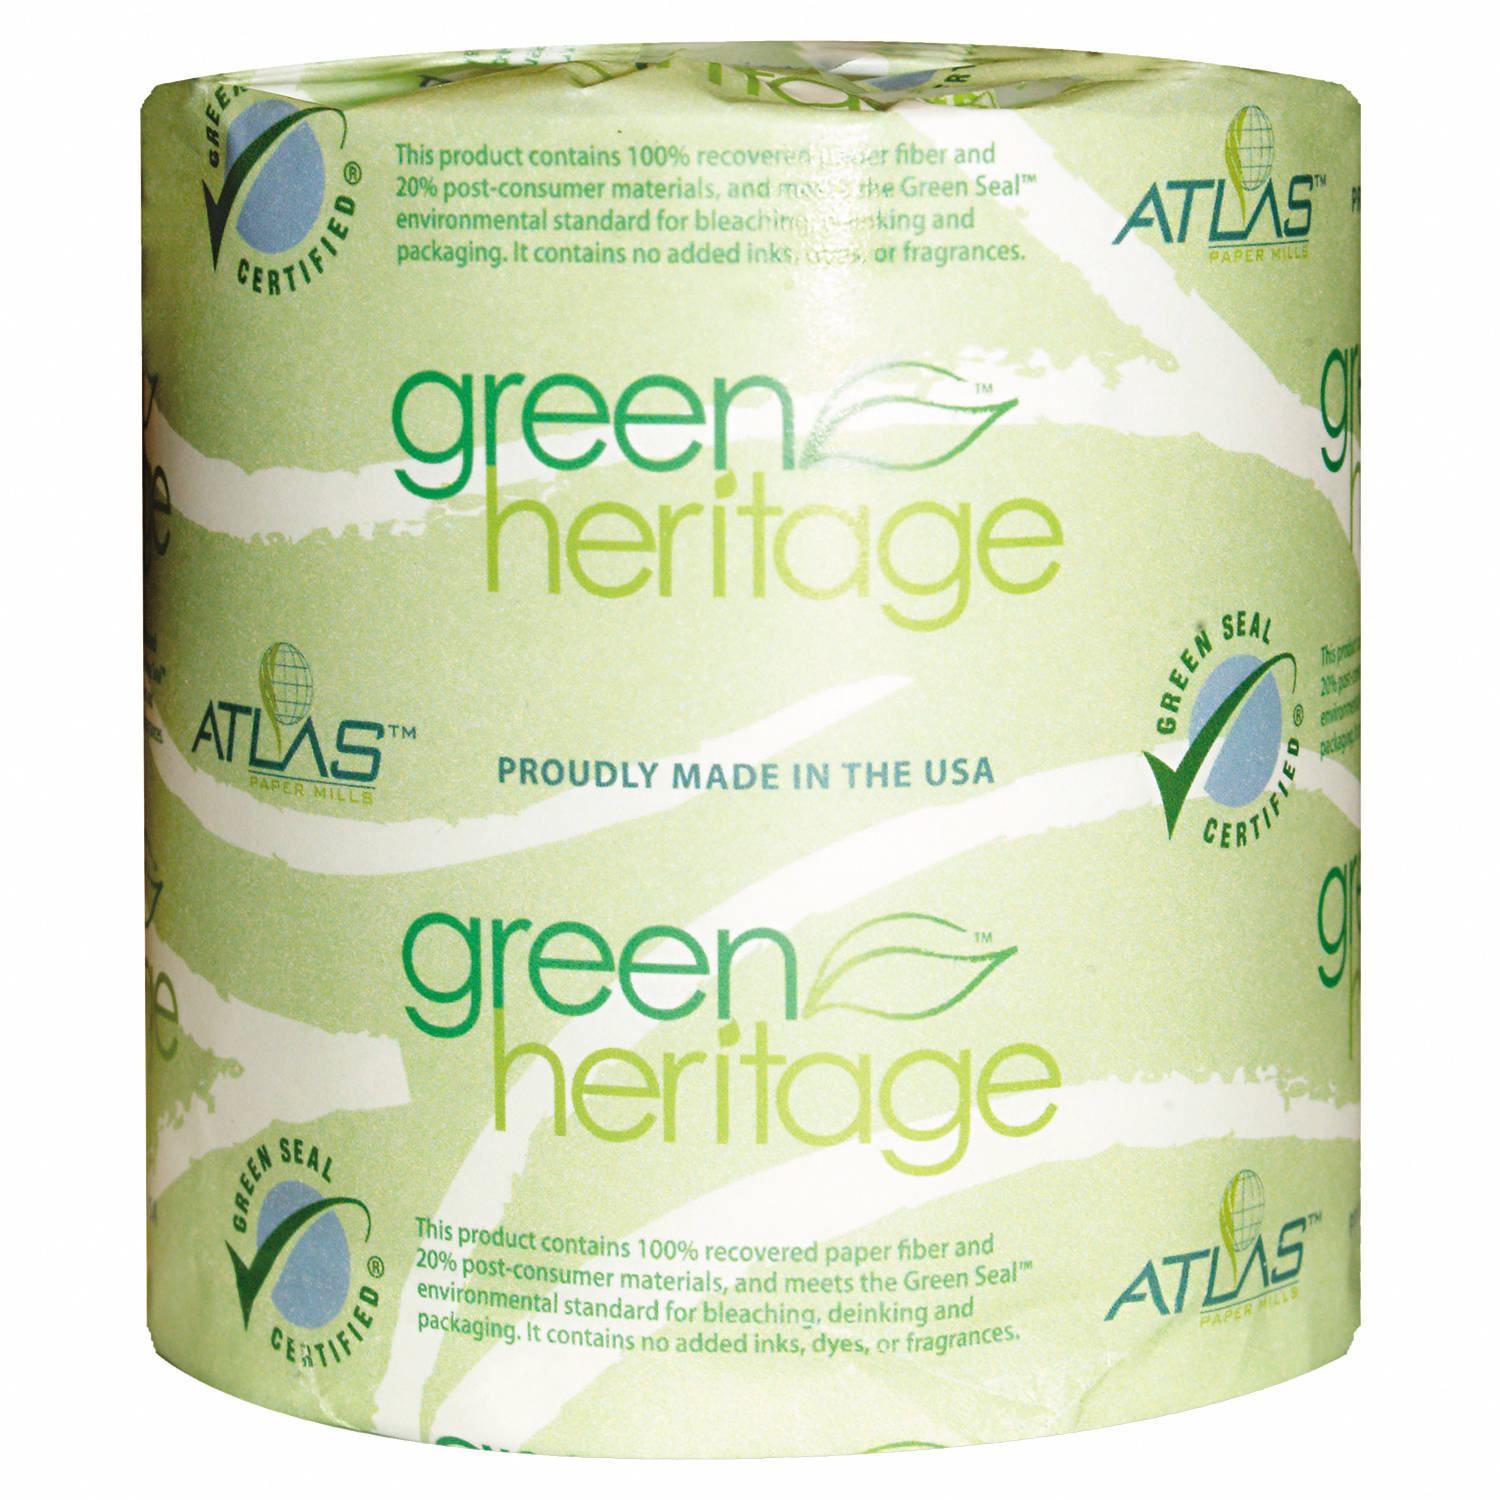 Atlas Paper Mills Green Heritage 1-Ply Toilet Tissue, 1000 sheets, 96 rolls